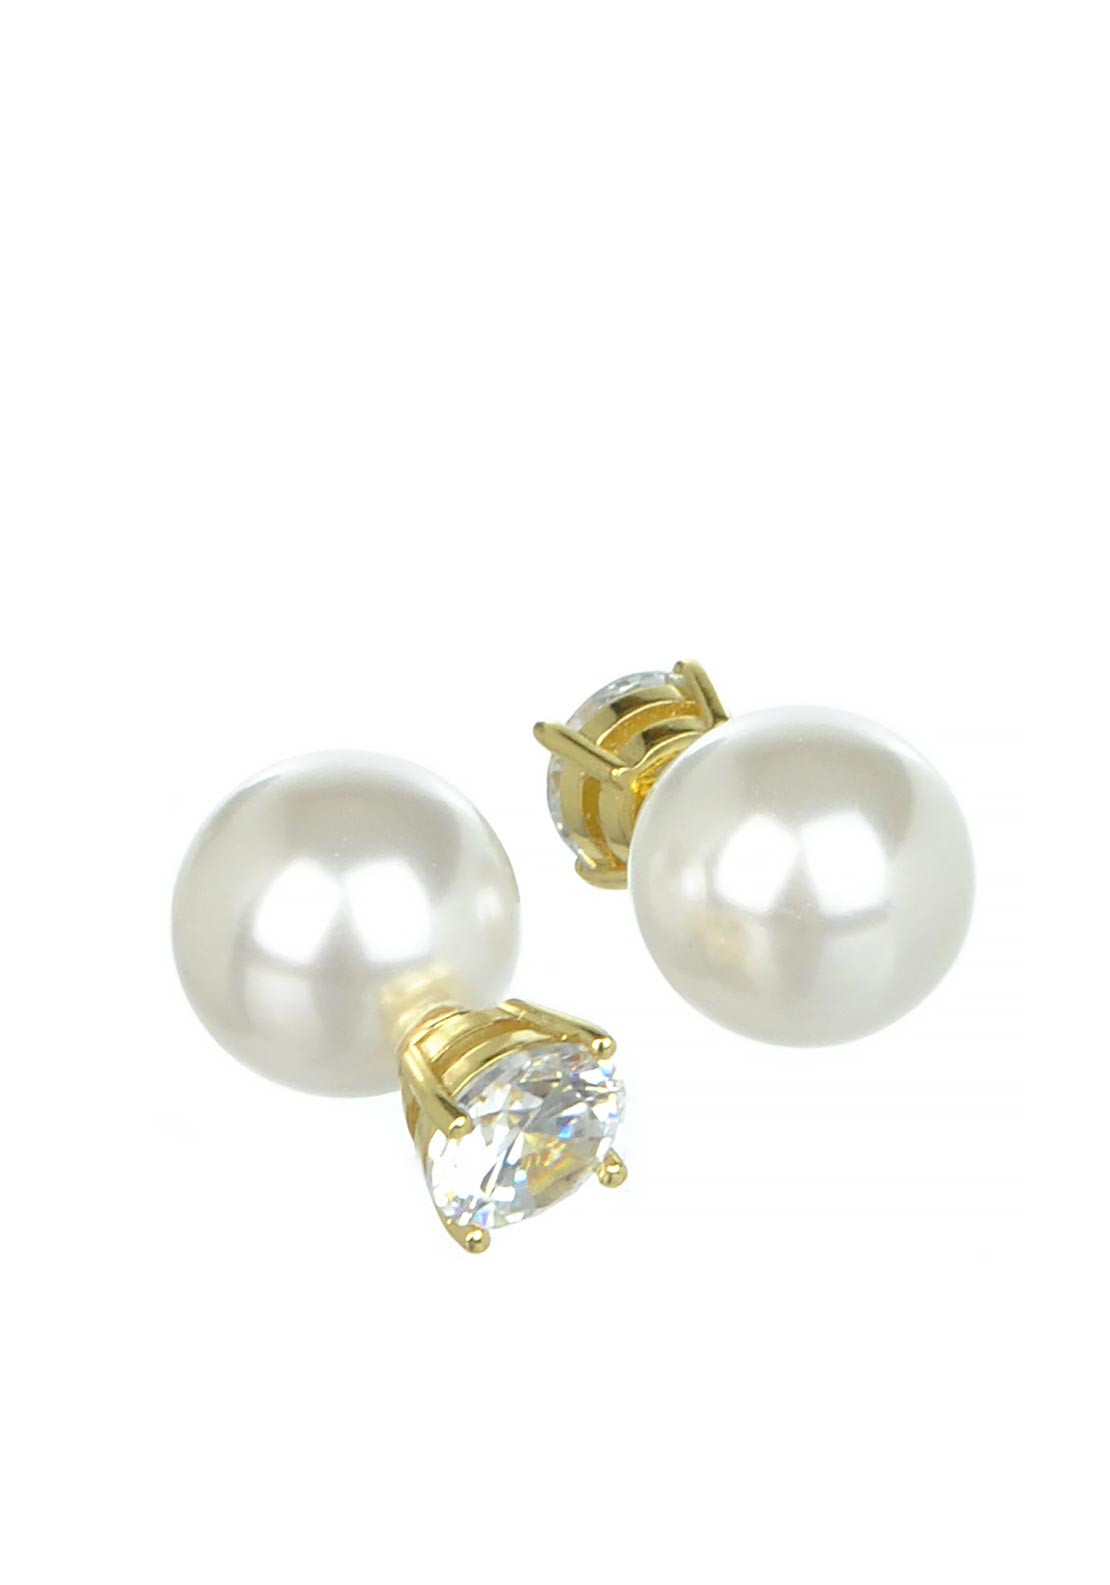 Nour London Double Sided Pearl & Crystal Earring, Gold